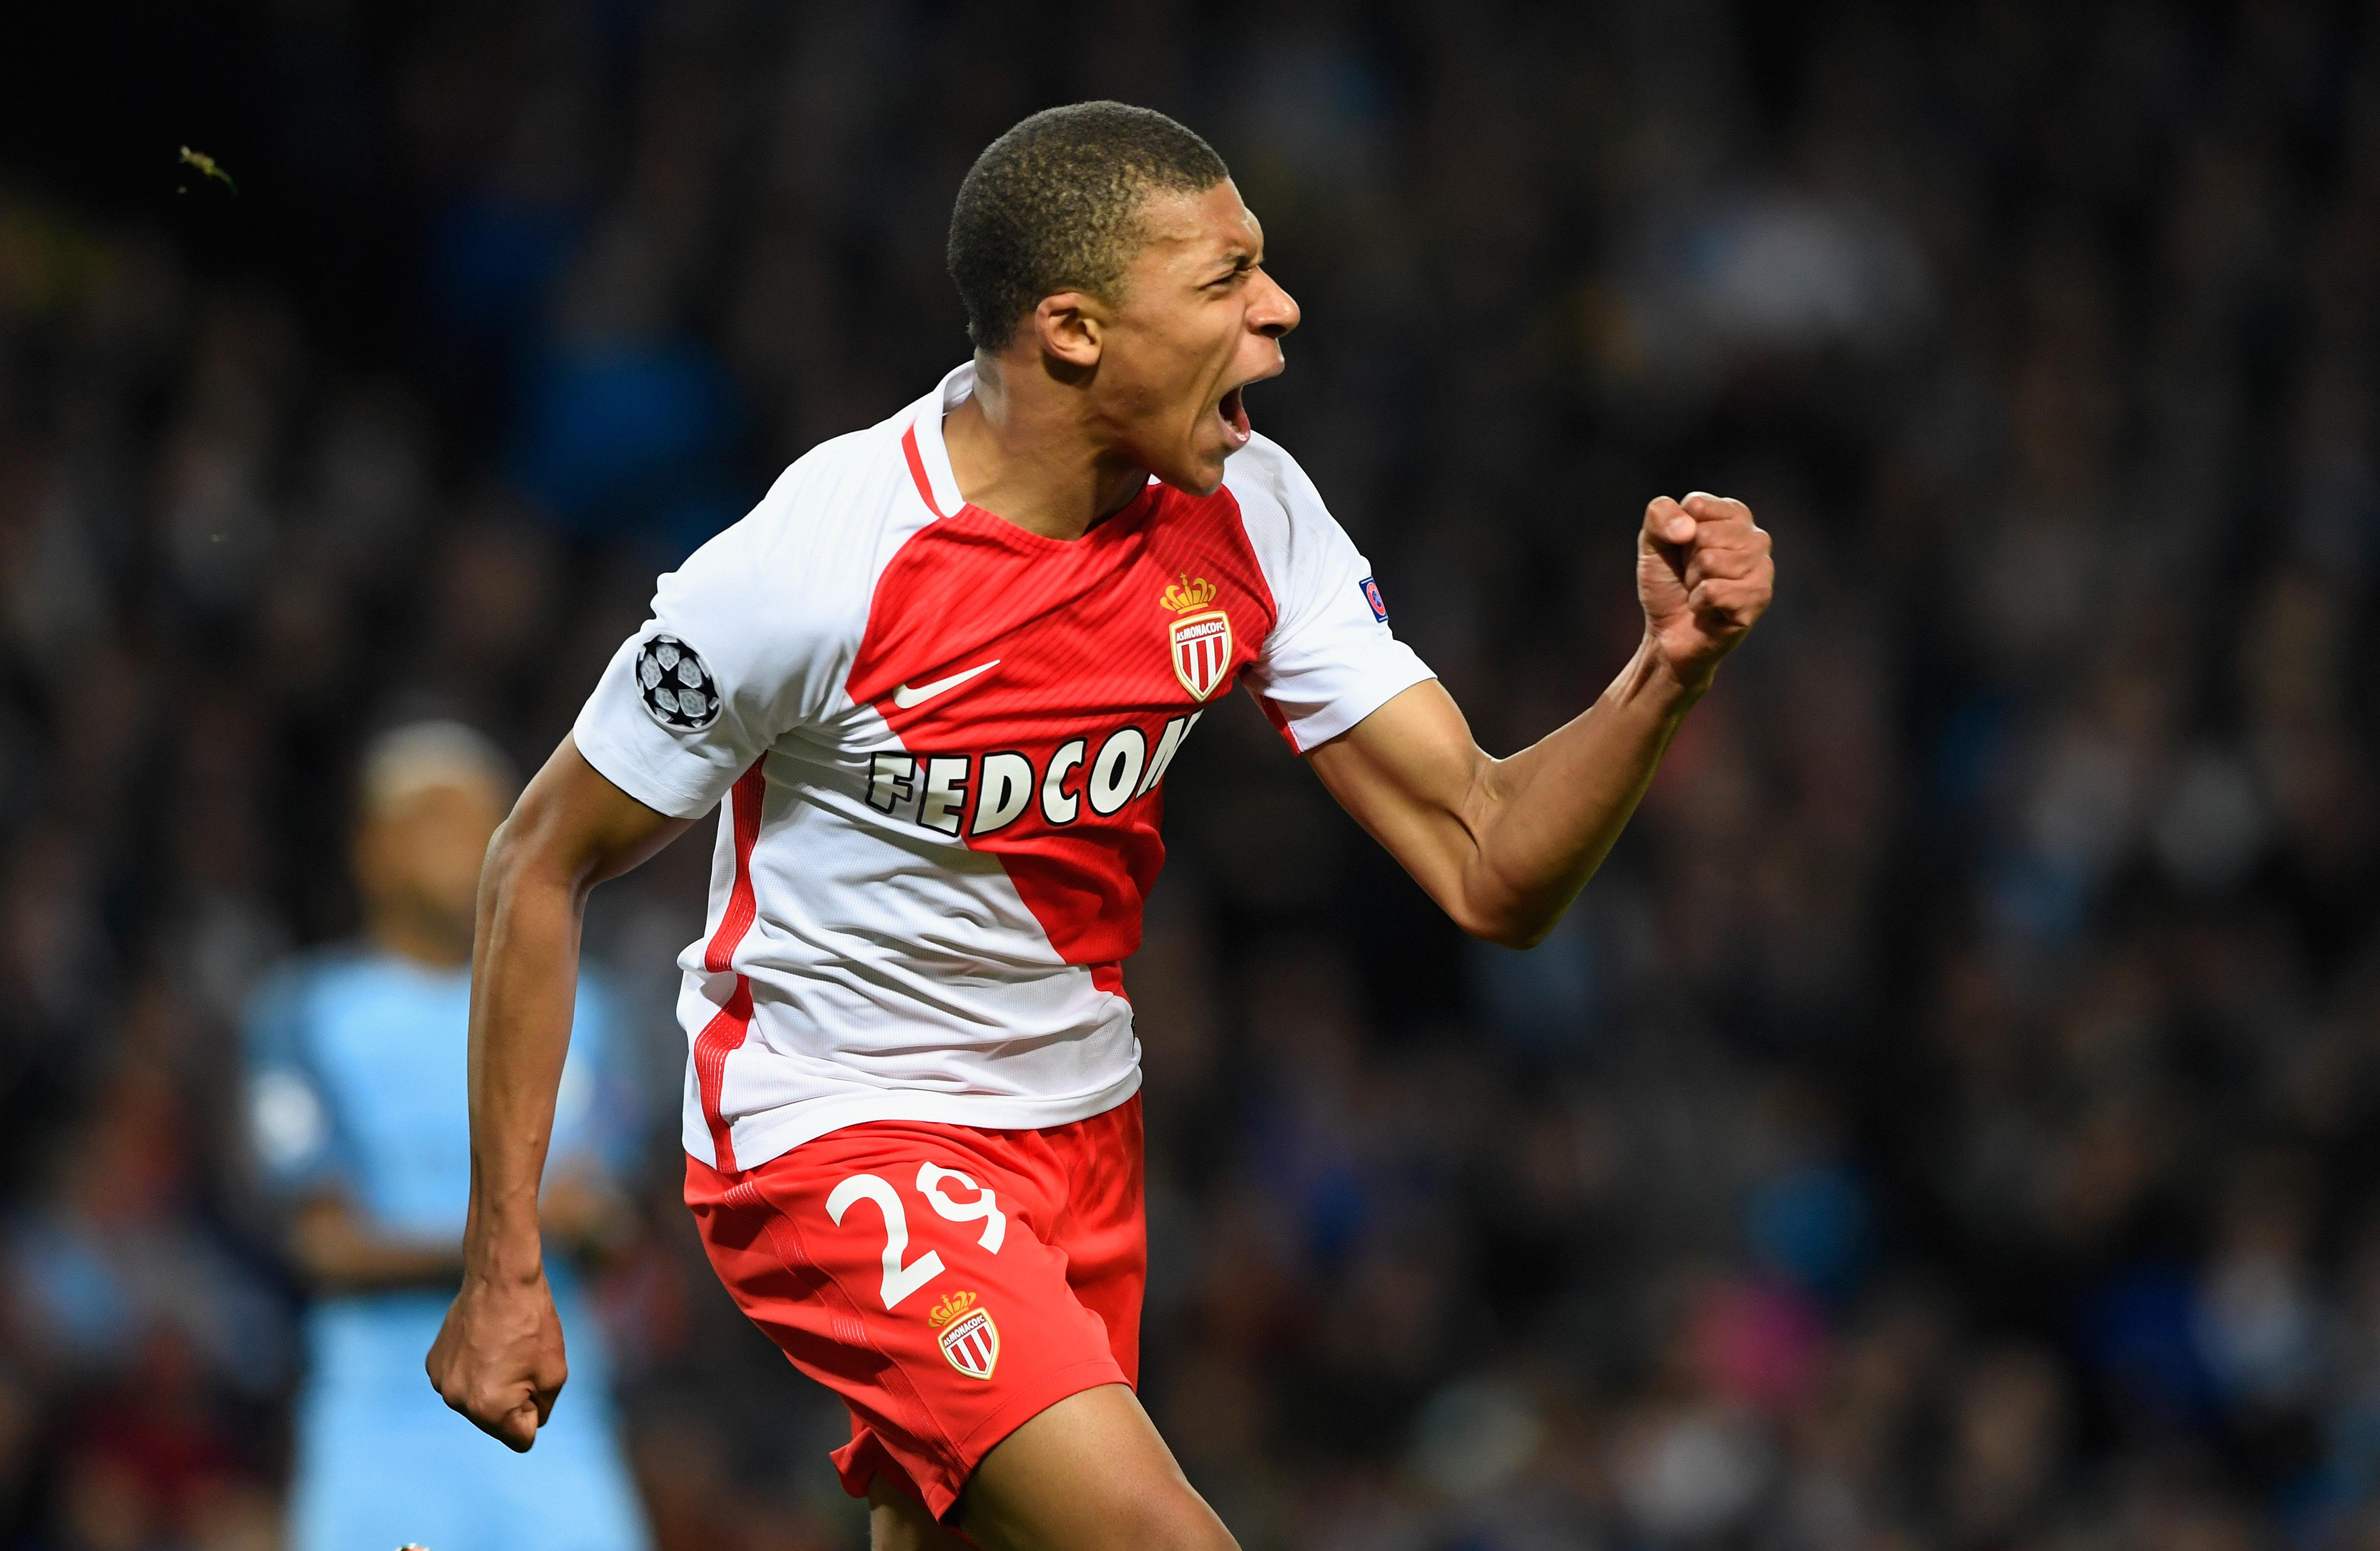 Monaco dumped out Man City on away goal in the Champions League last season prematurely ending a cracking tie